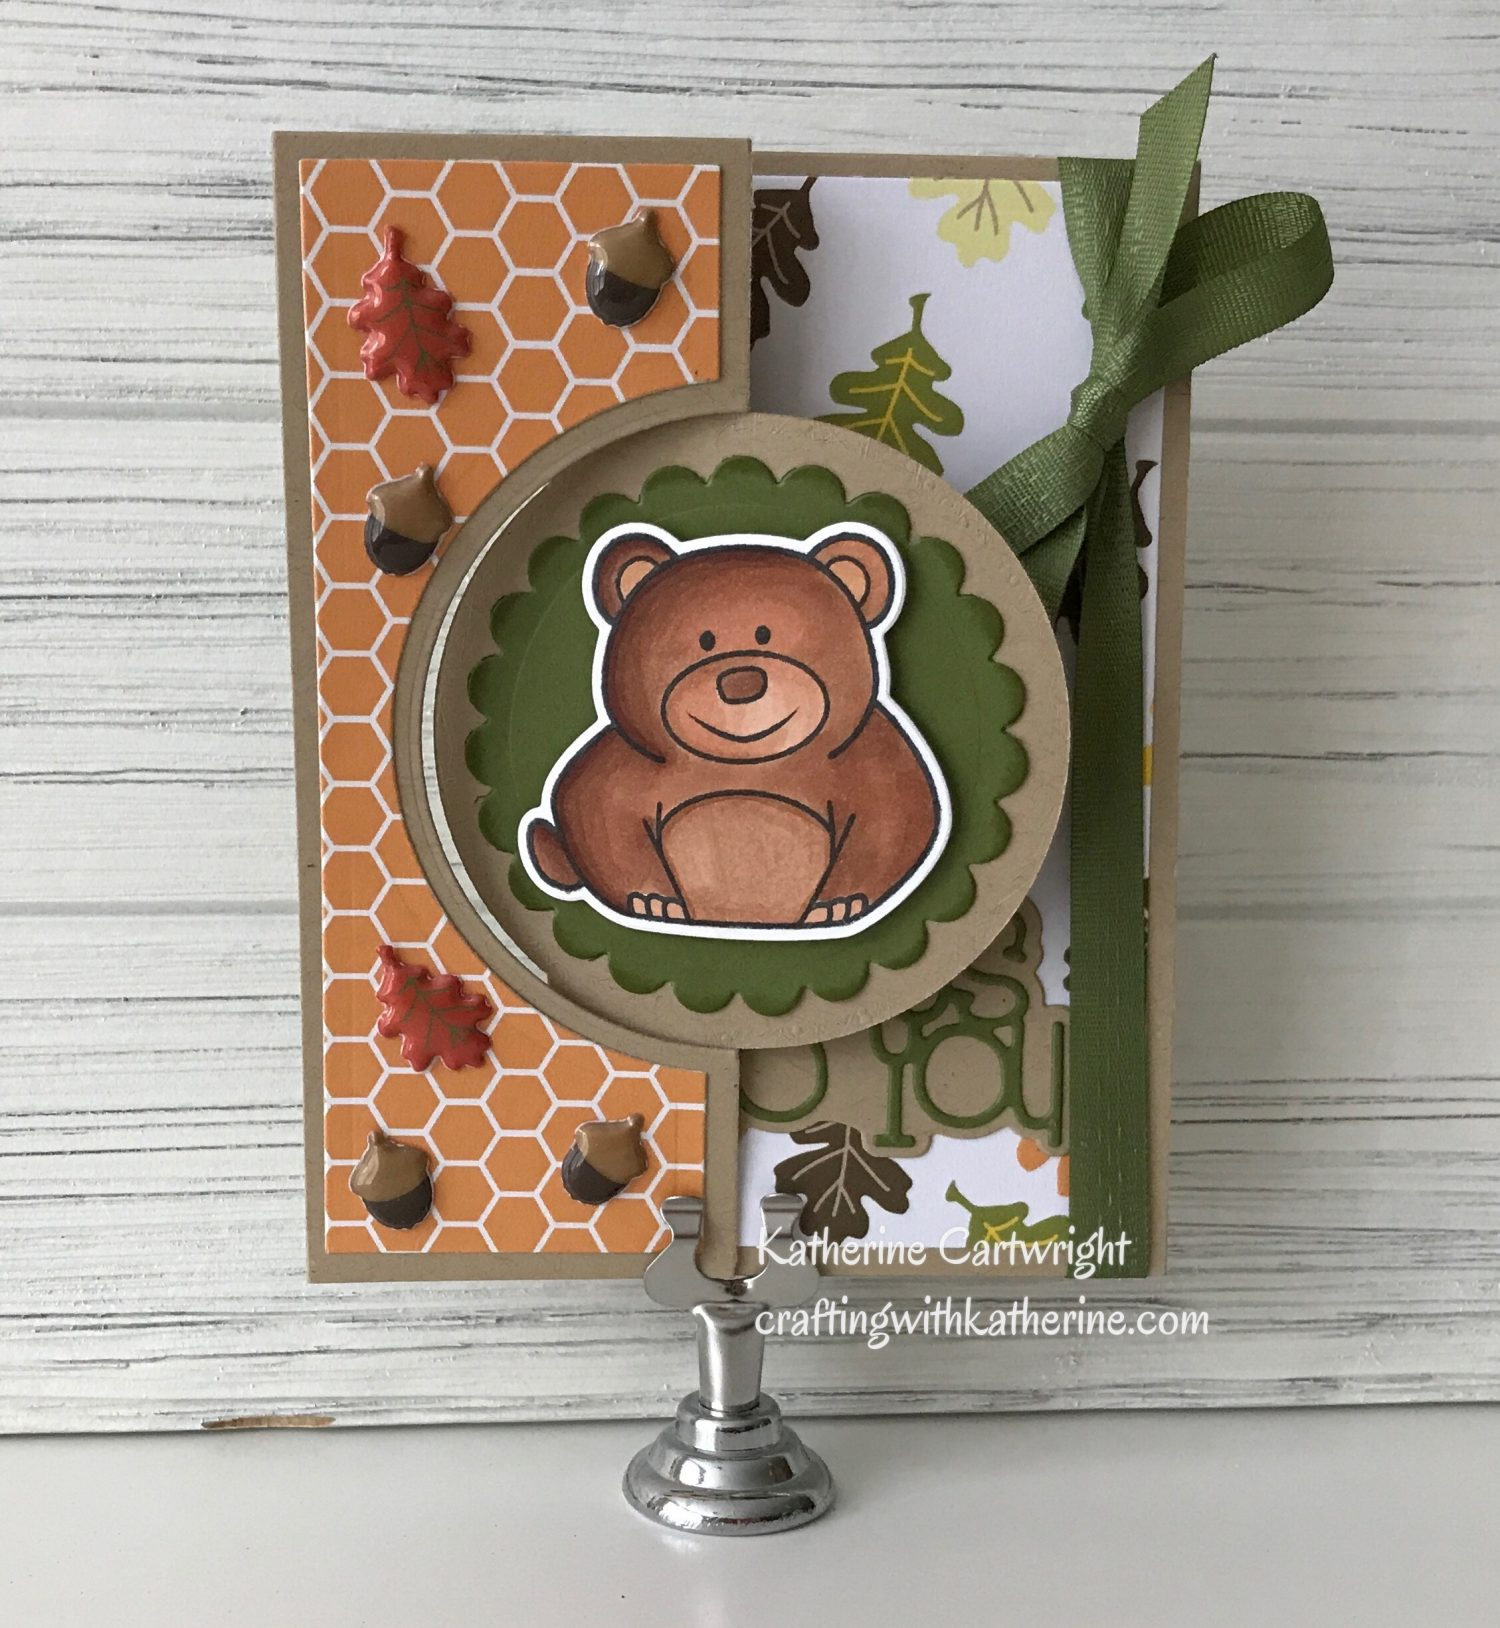 Bear Hugs to You featuring The Stamps of Life